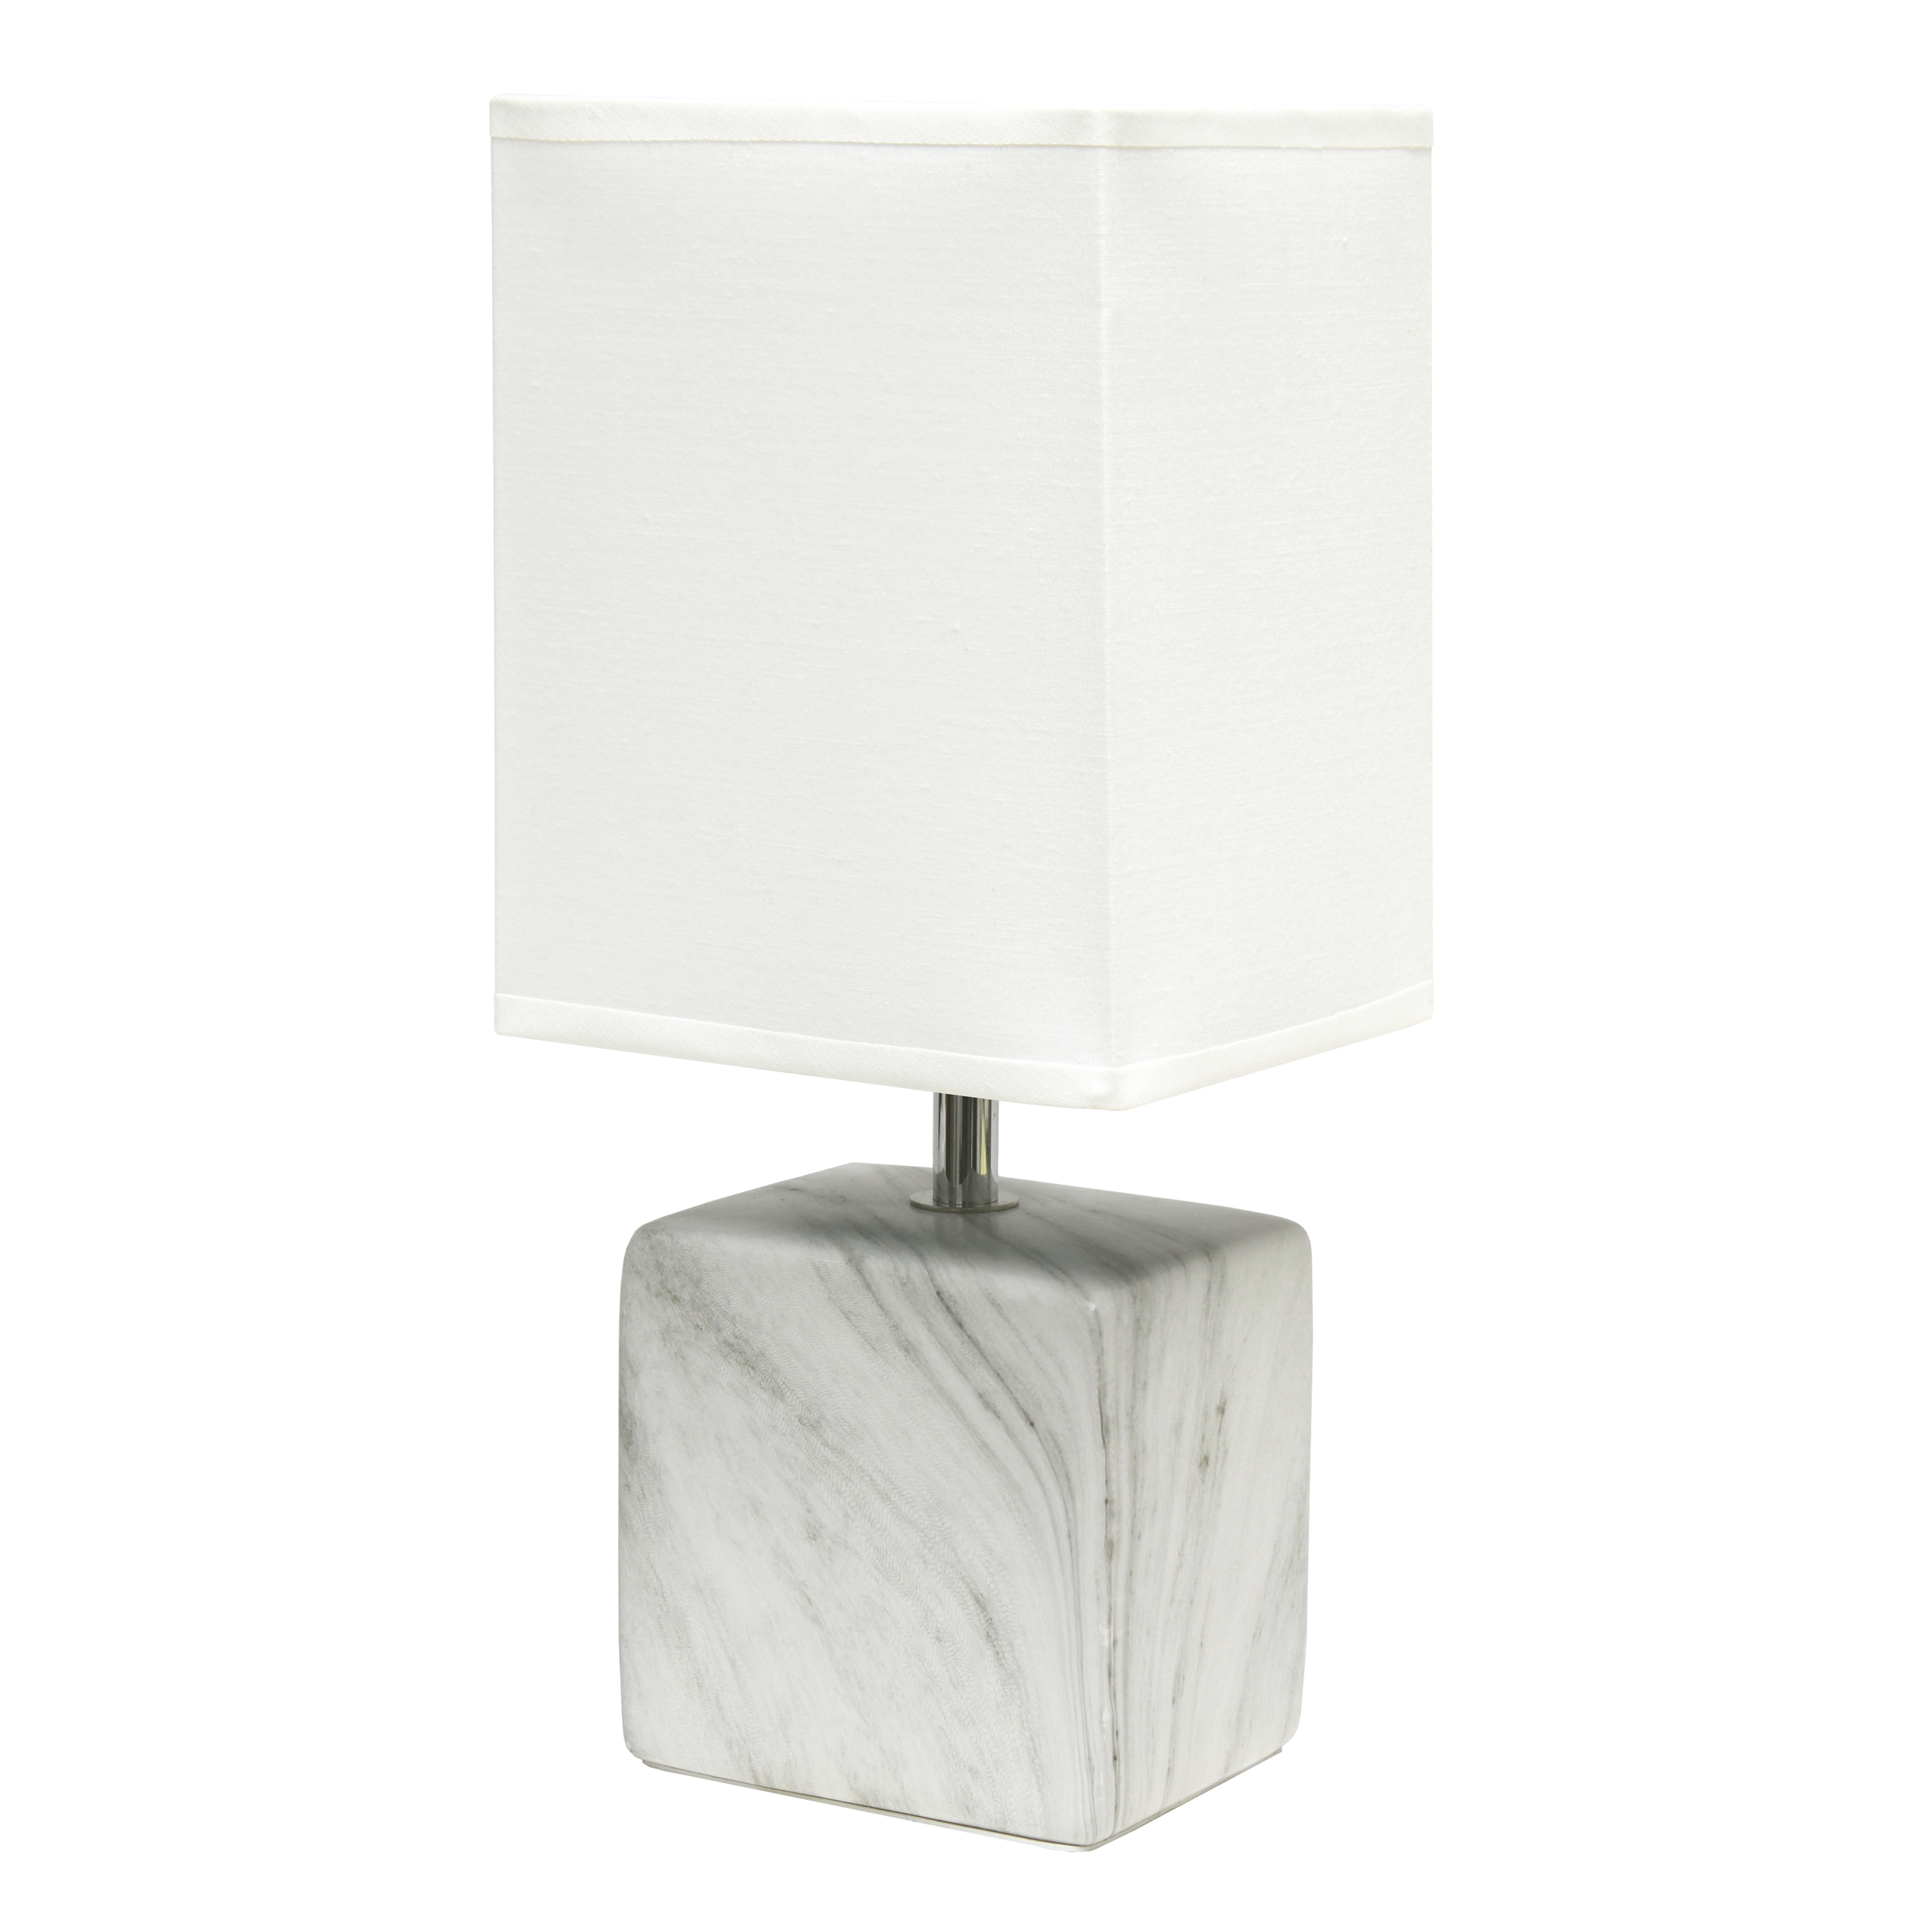 Simple Designs Petite Marbled Ceramic Table Lamp with Fabric Shade, White with White Shade